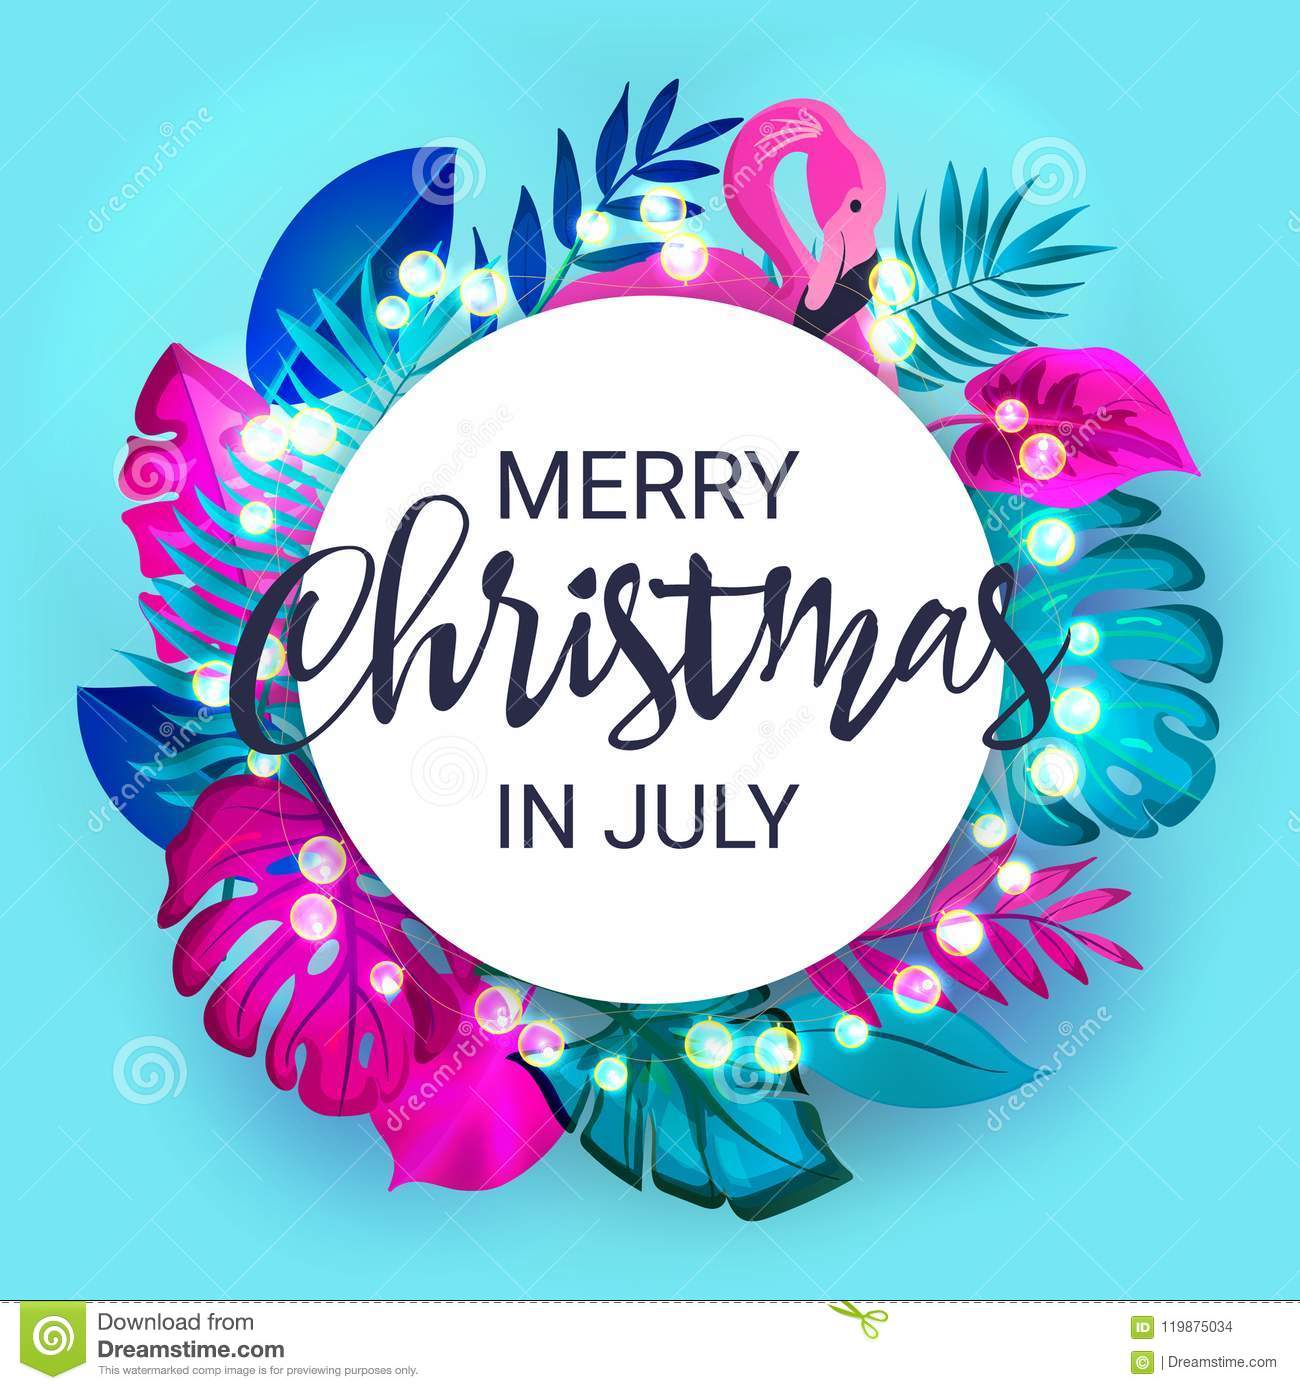 Christmas In July Free Image.Christmas In July Sale Marketing Template Eps 10 Vector